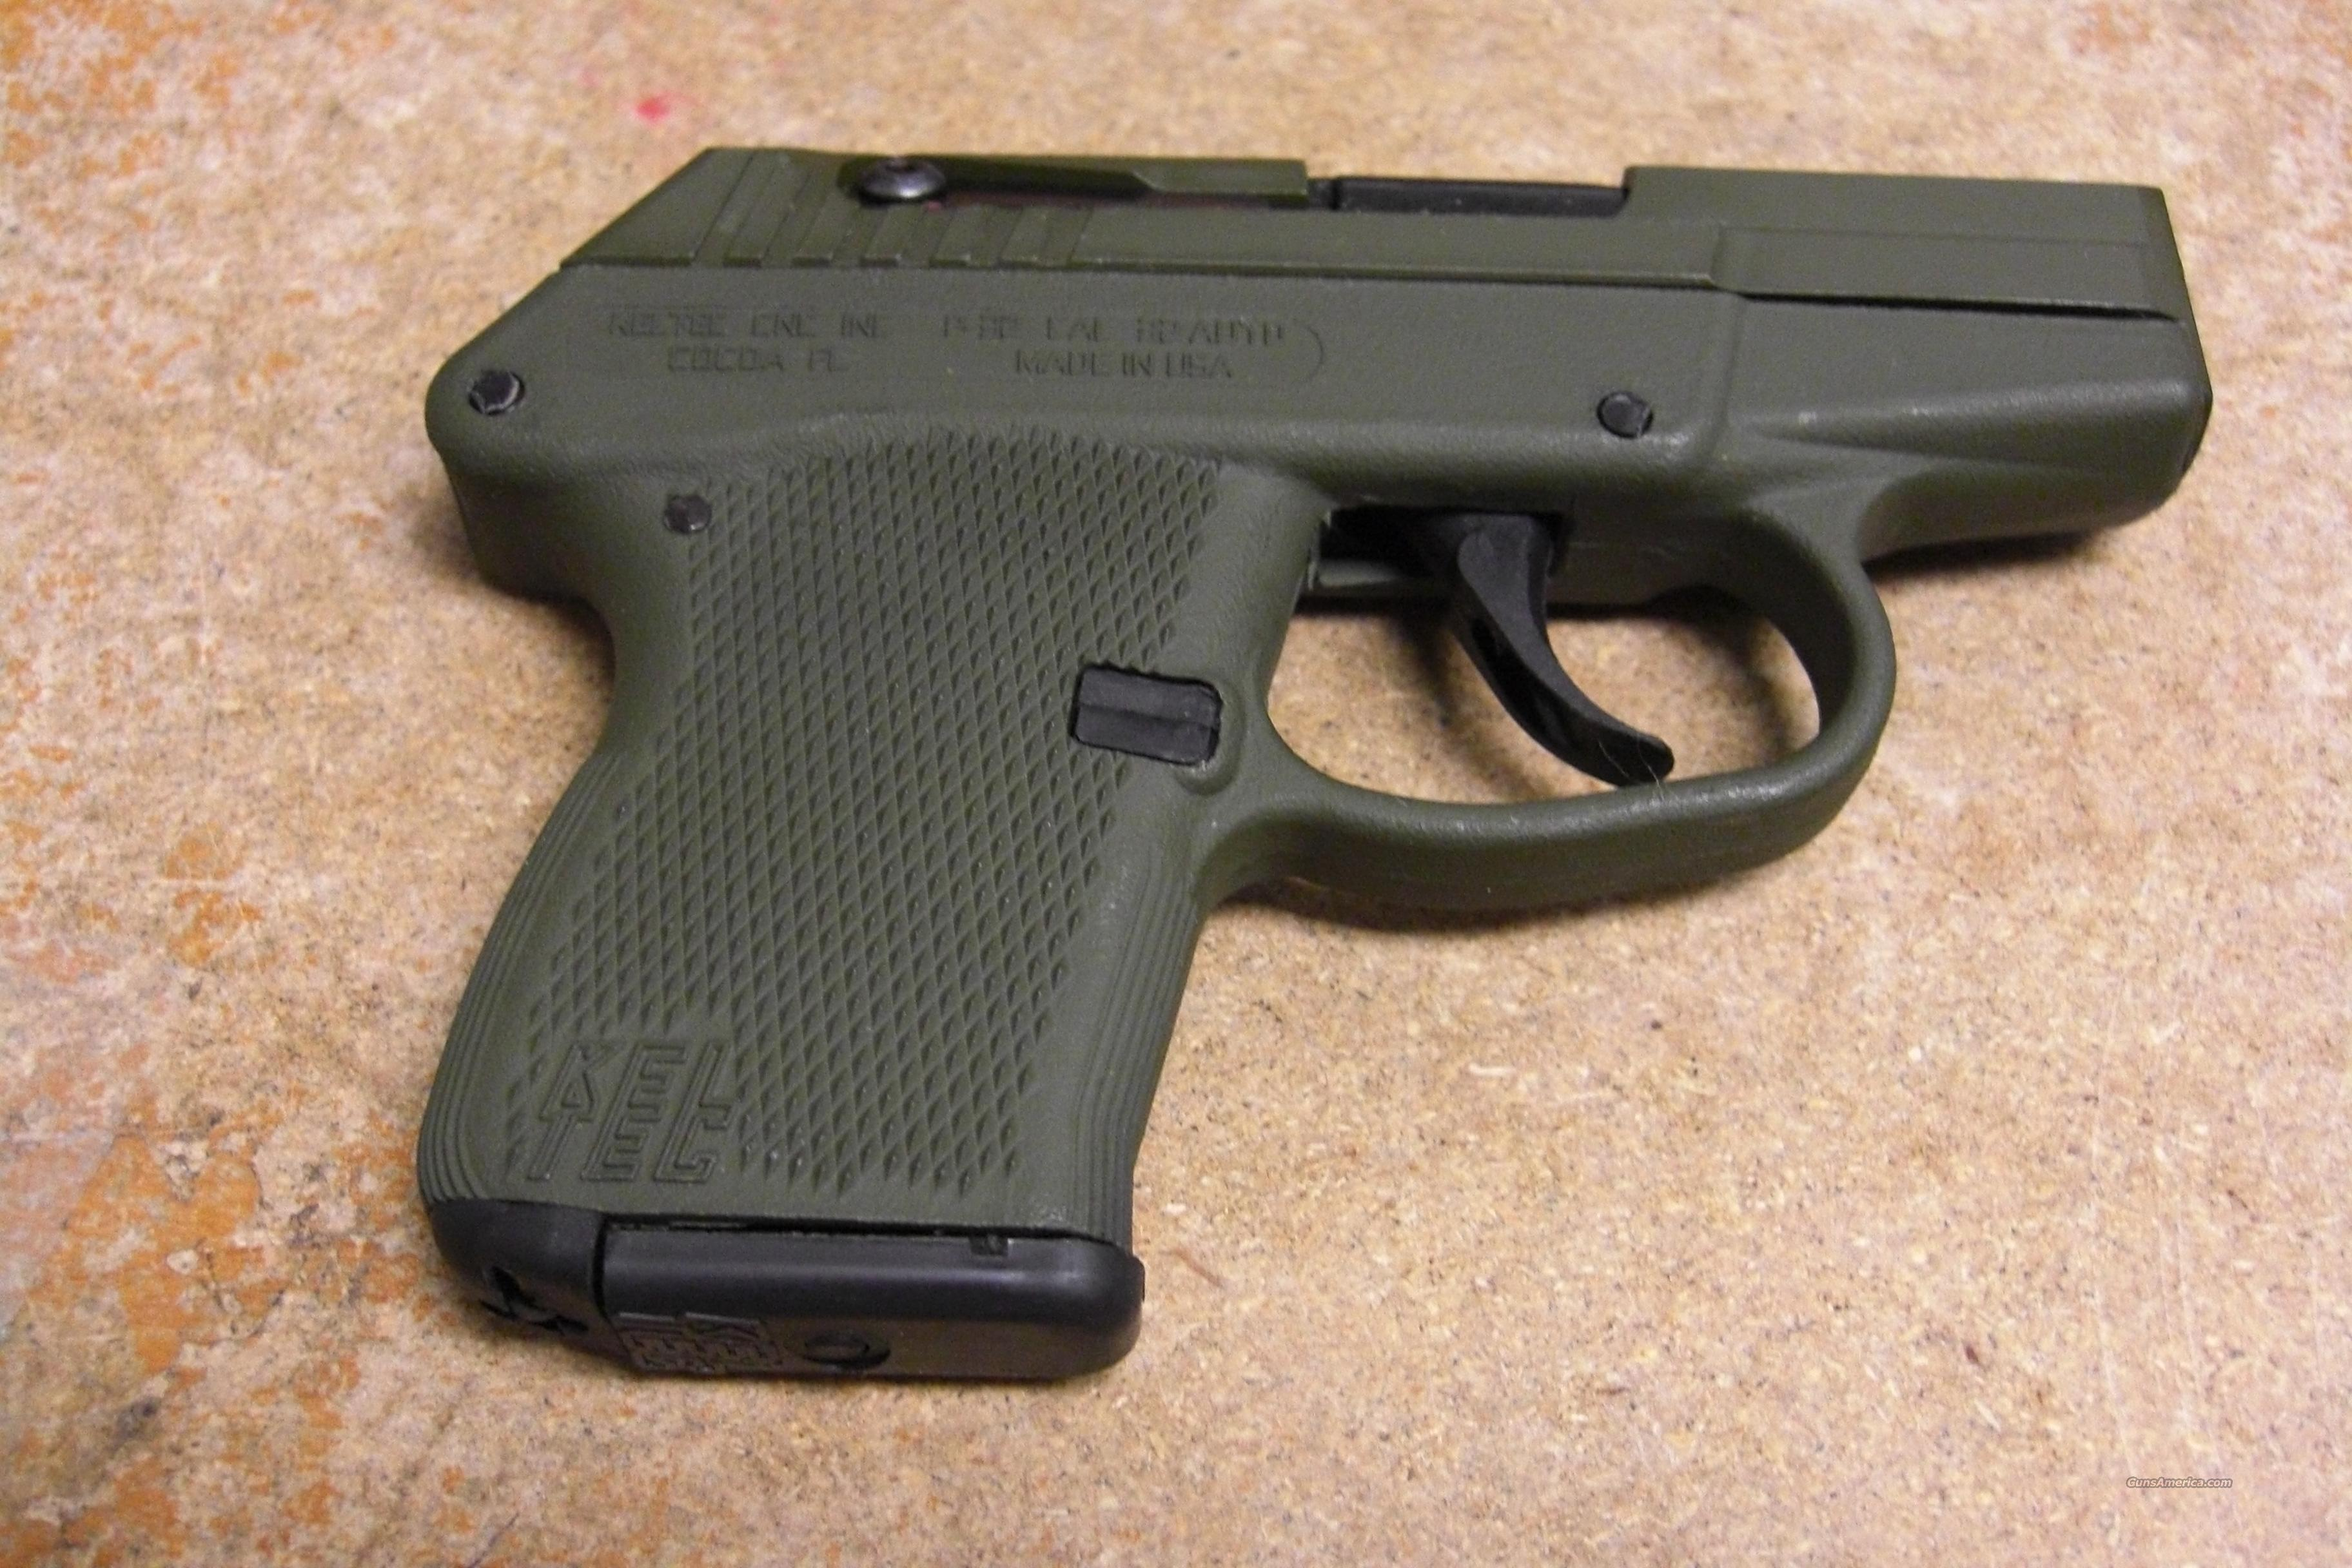 P-32 w/overall OD green finish  Guns > Pistols > Kel-Tec Pistols > Pocket Pistol Type